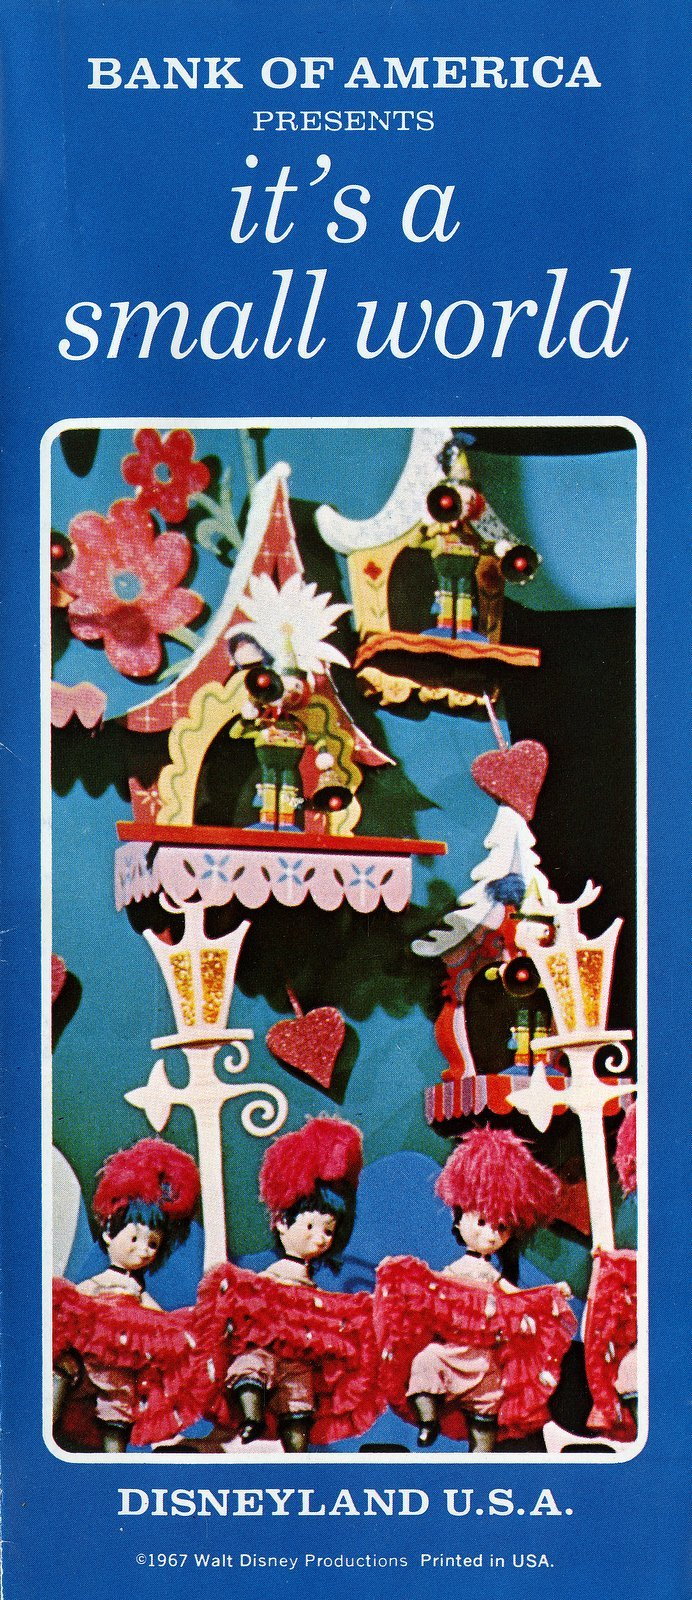 It's a Small World after all About Disneyland's hugely-popular attraction for little Mouseketeers (1960s)